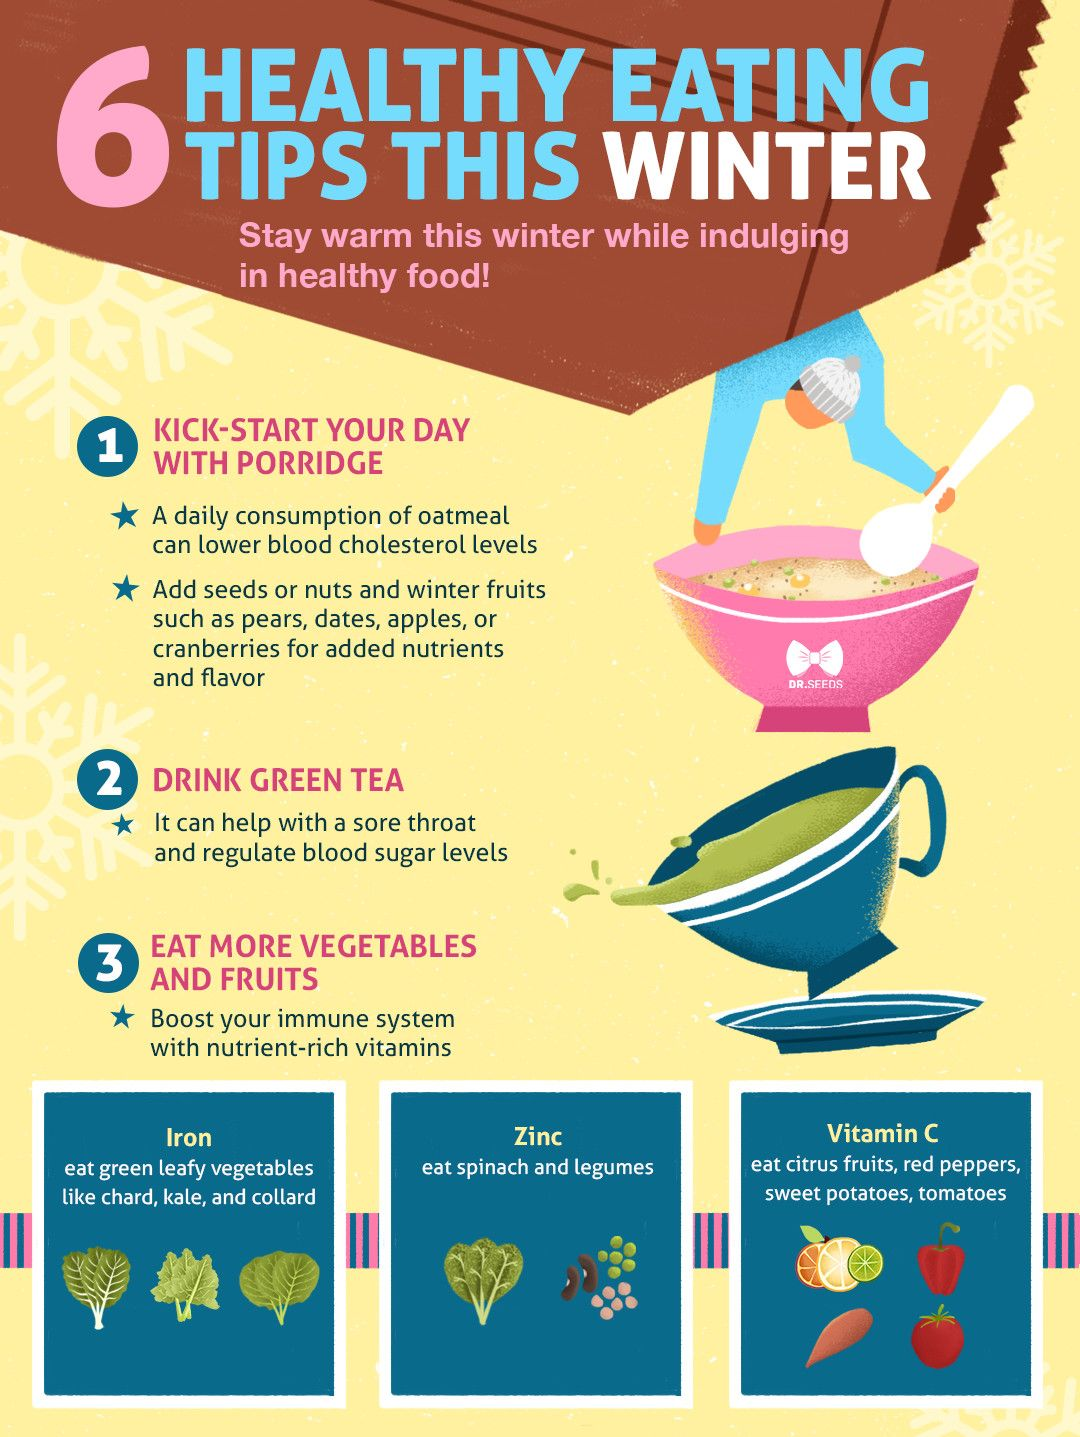 9 Healthy Eating Tips This Winter Infographic